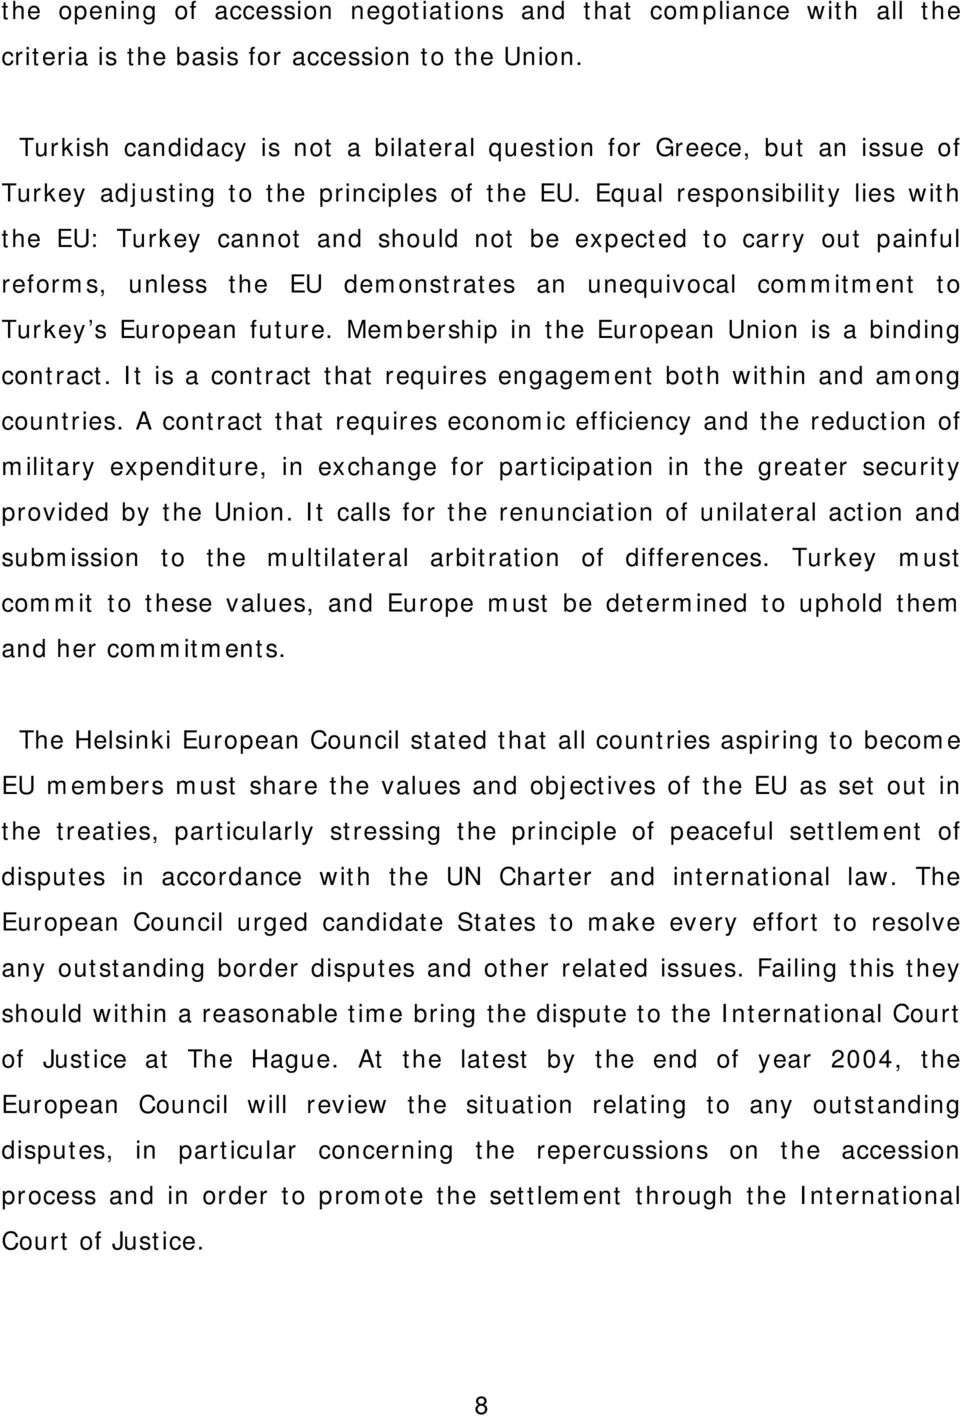 Equal responsibility lies with the EU: Turkey cannot and should not be expected to carry out painful reforms, unless the EU demonstrates an unequivocal commitment to Turkey s European future.